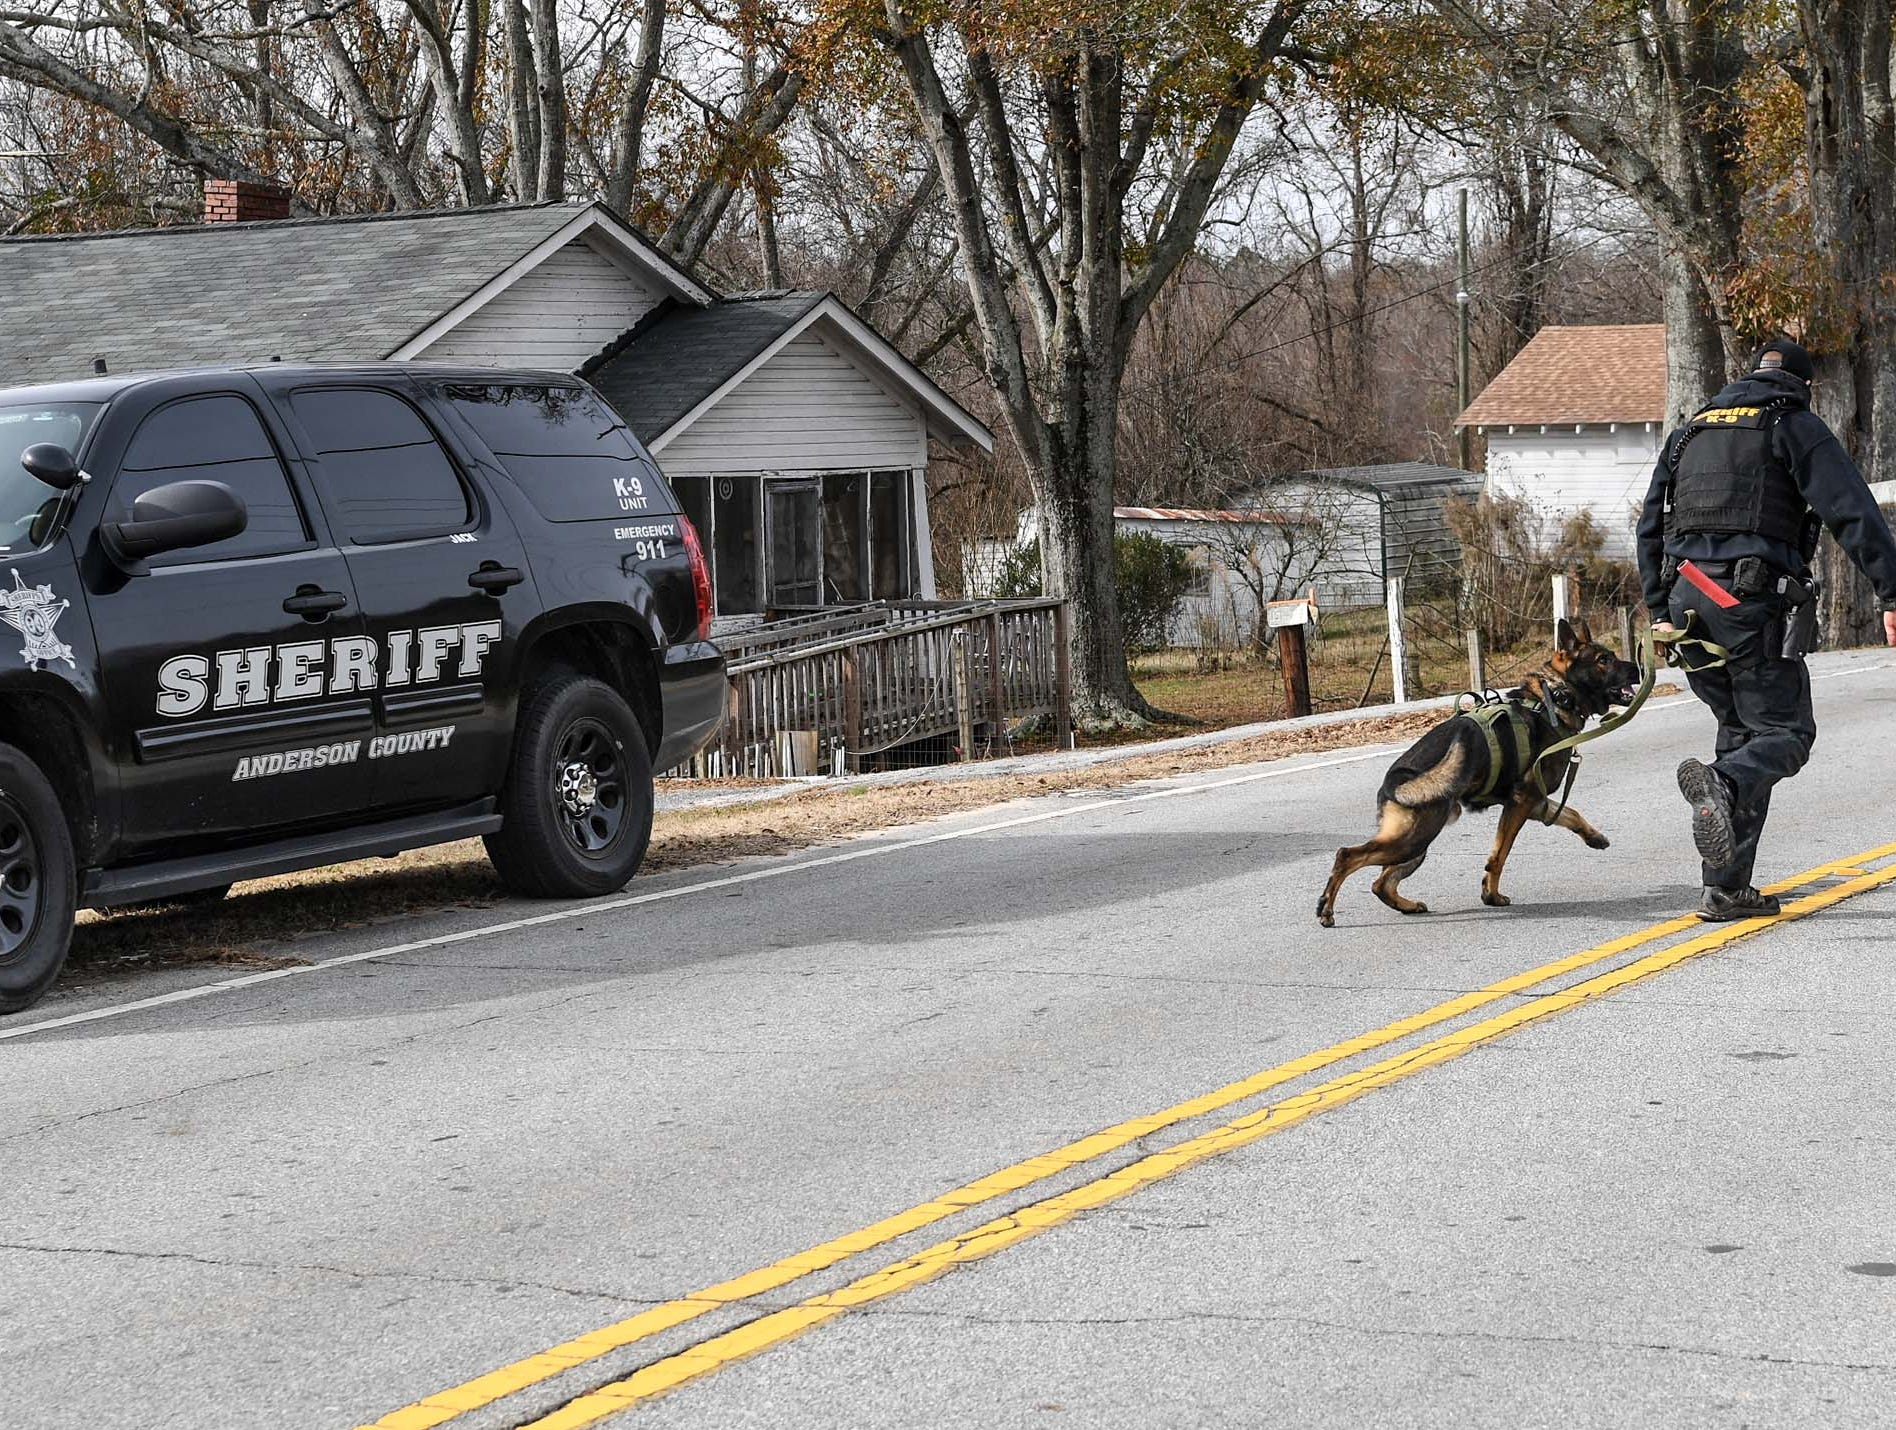 Anderson County Sheriff Deputies responded to Brazeale Street in Belton after a report that a man struck an officer serving a warrant at a house Wednesday, December 12, 2018.